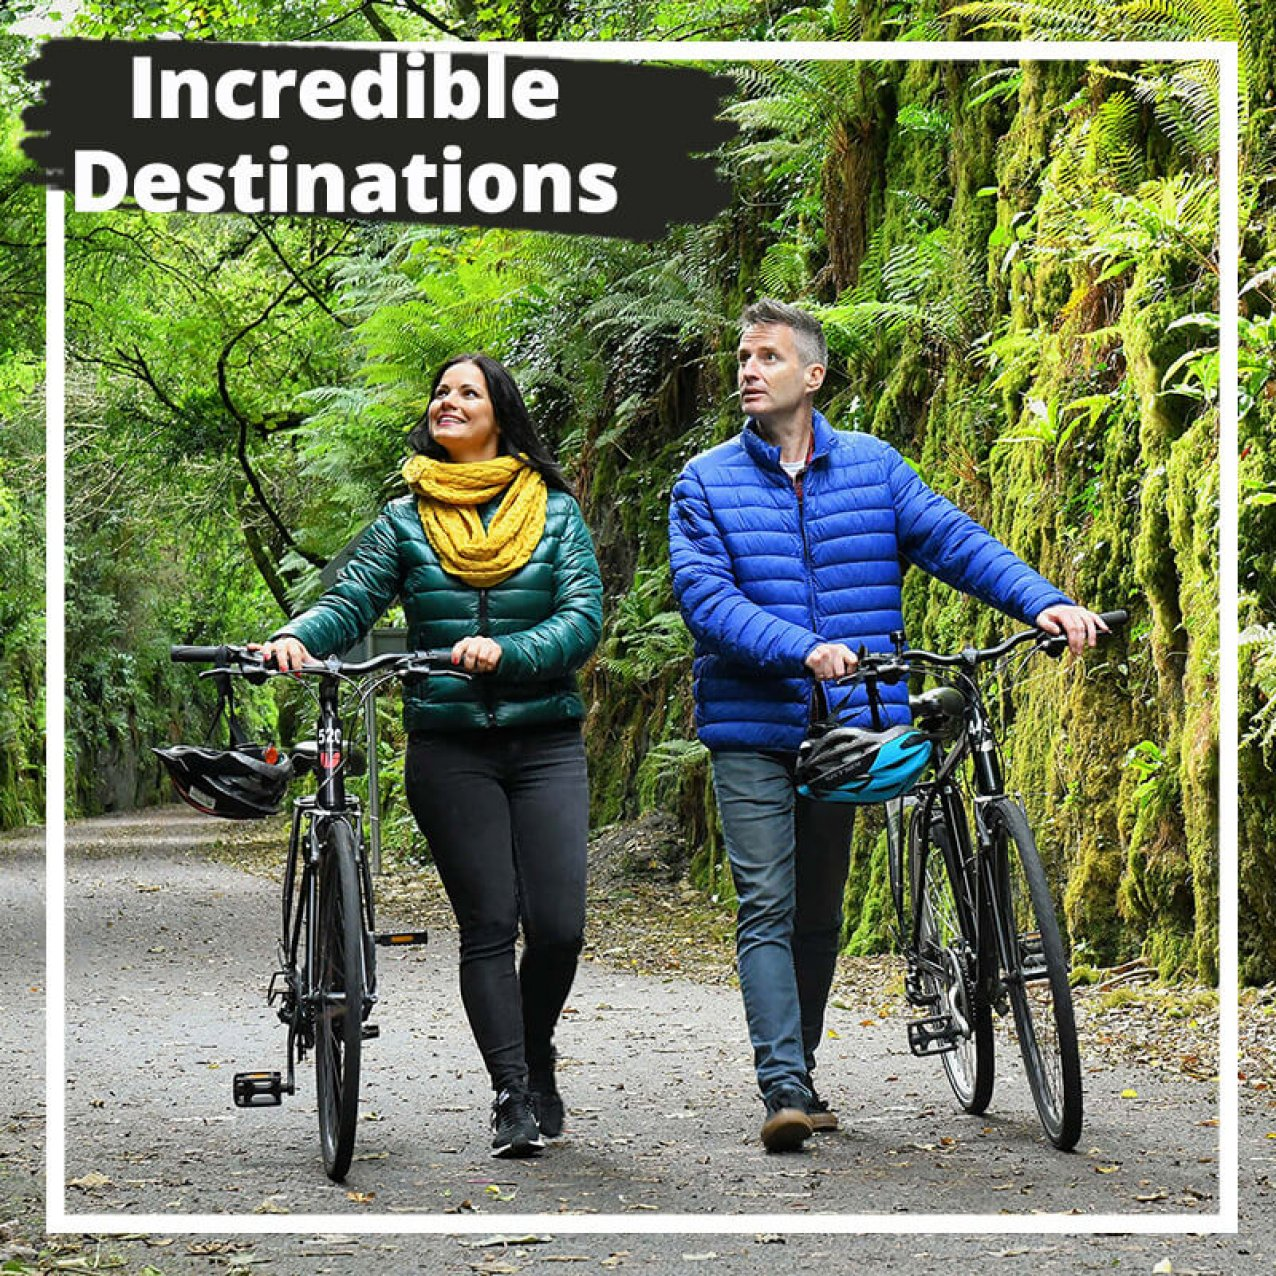 Incredible destinations with couple on bikes in Ireland